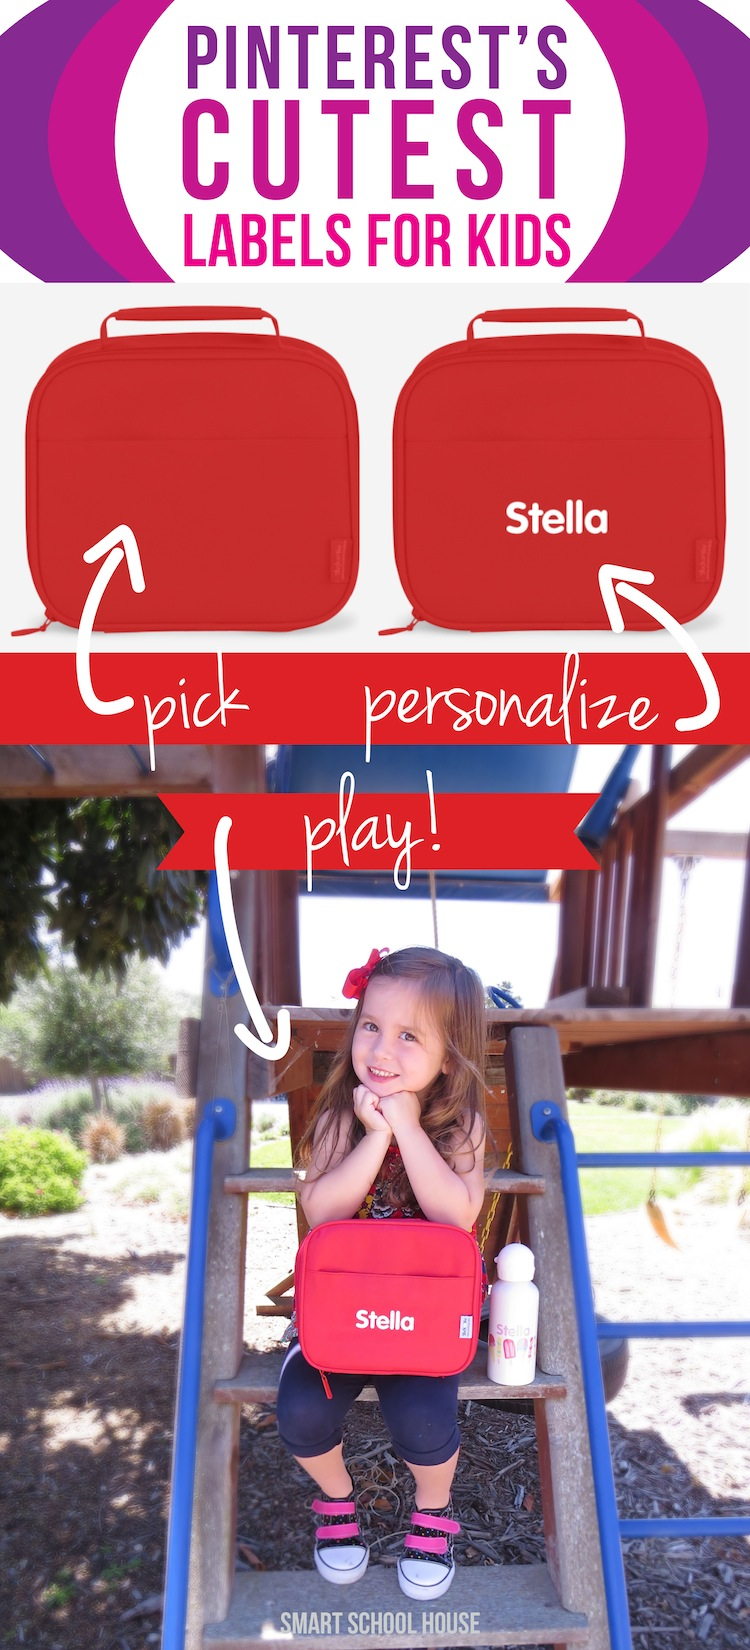 A great solution for busy families. Pick, personalized, & play! These are Pinteret's CUTEST labels for kids